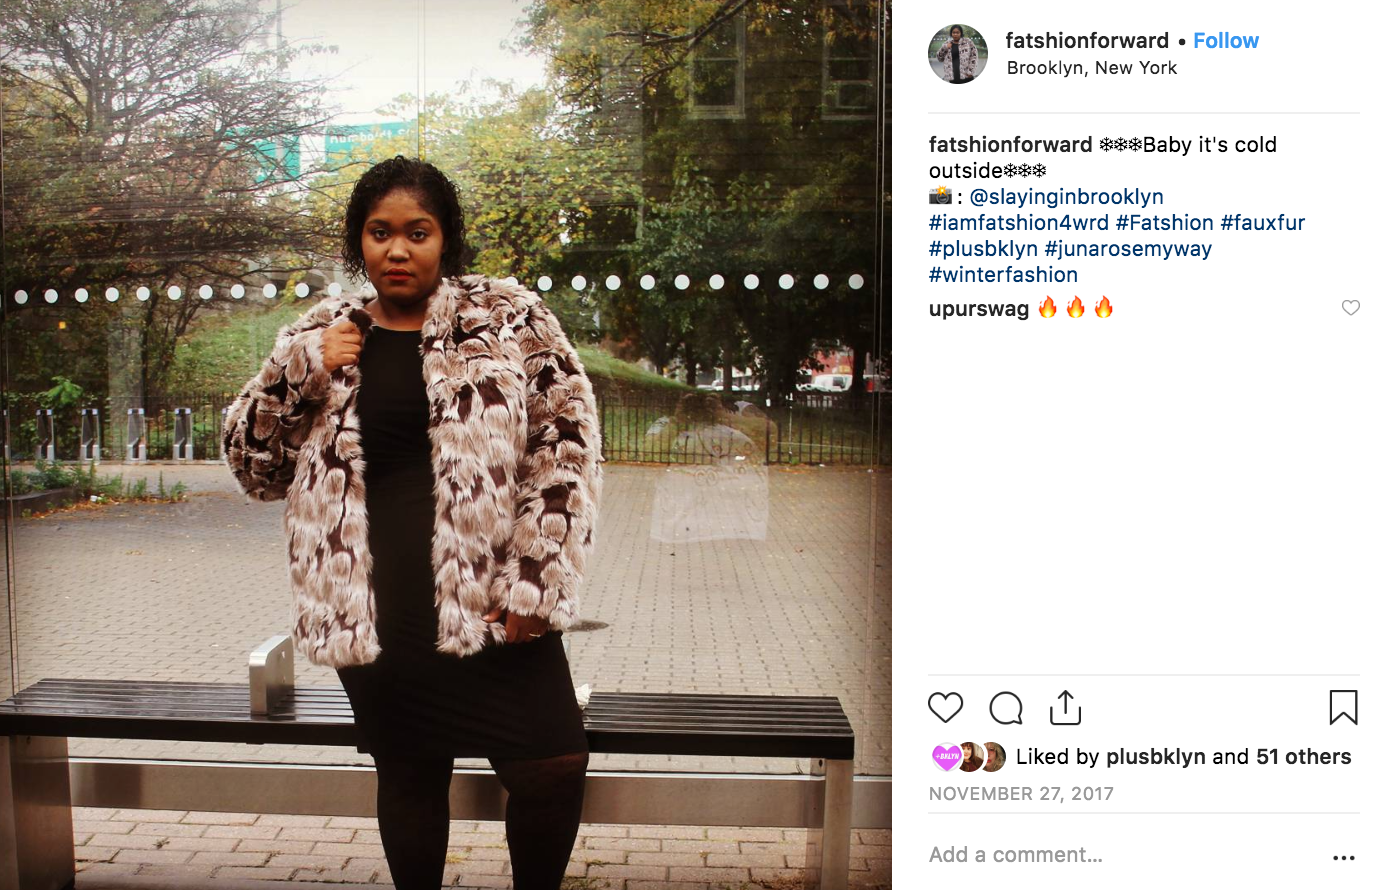 Shereece wearing a plus size faux fur coat modeling outside